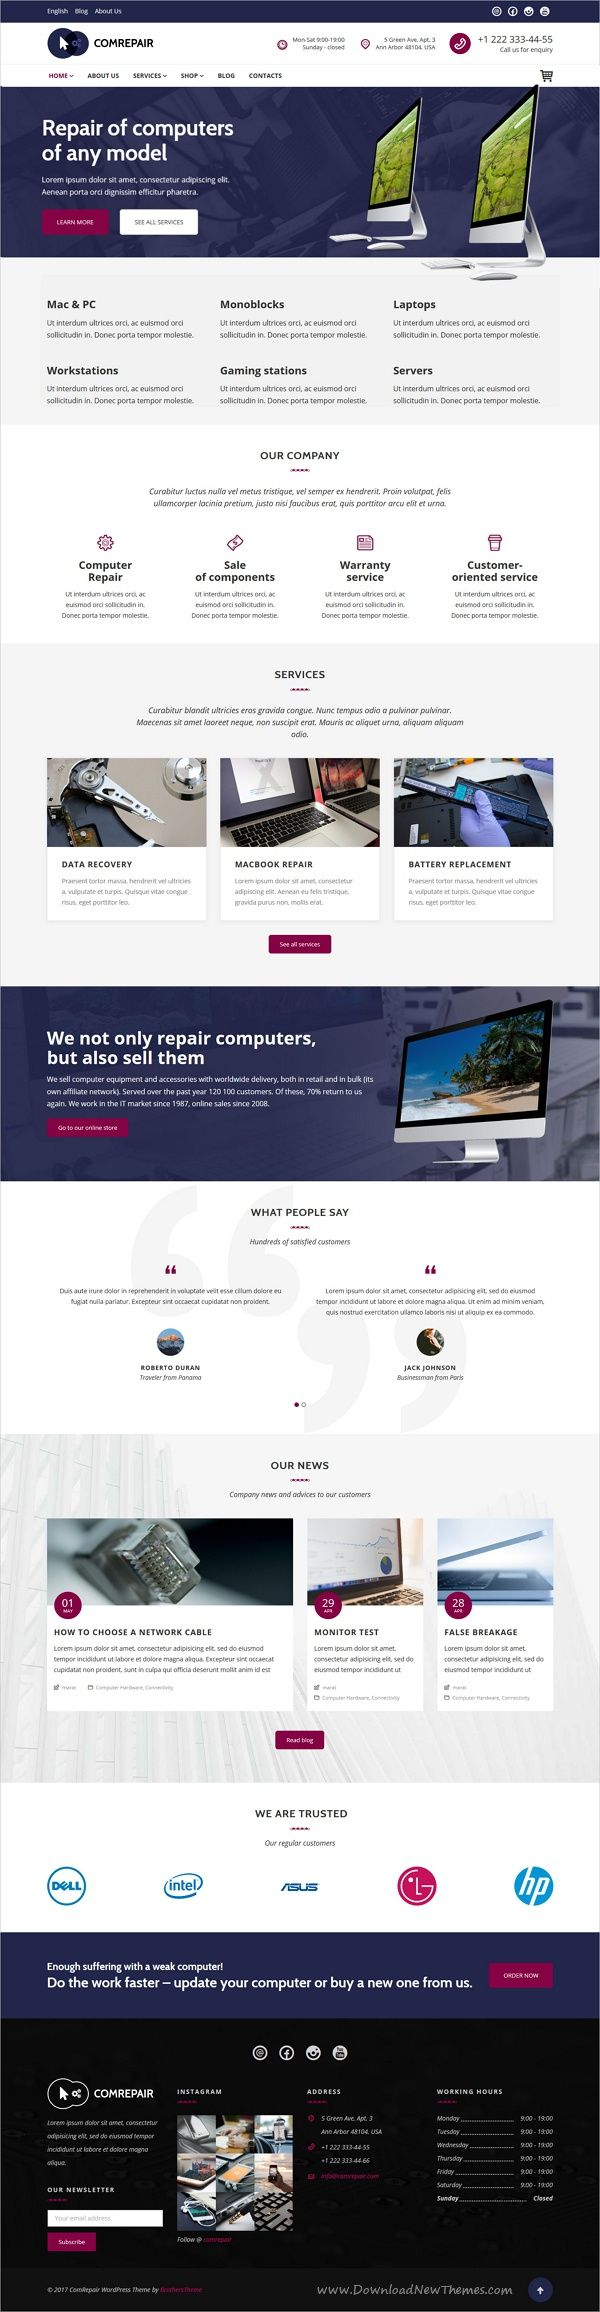 ComRepair is clean and modern design 4in1 responsive #WordPress theme for #electronic and mobile repair #services website download now > https://themeforest.net/item/comrepair-computer-repair-services-wordpress-theme/19836952?ref=Datasata